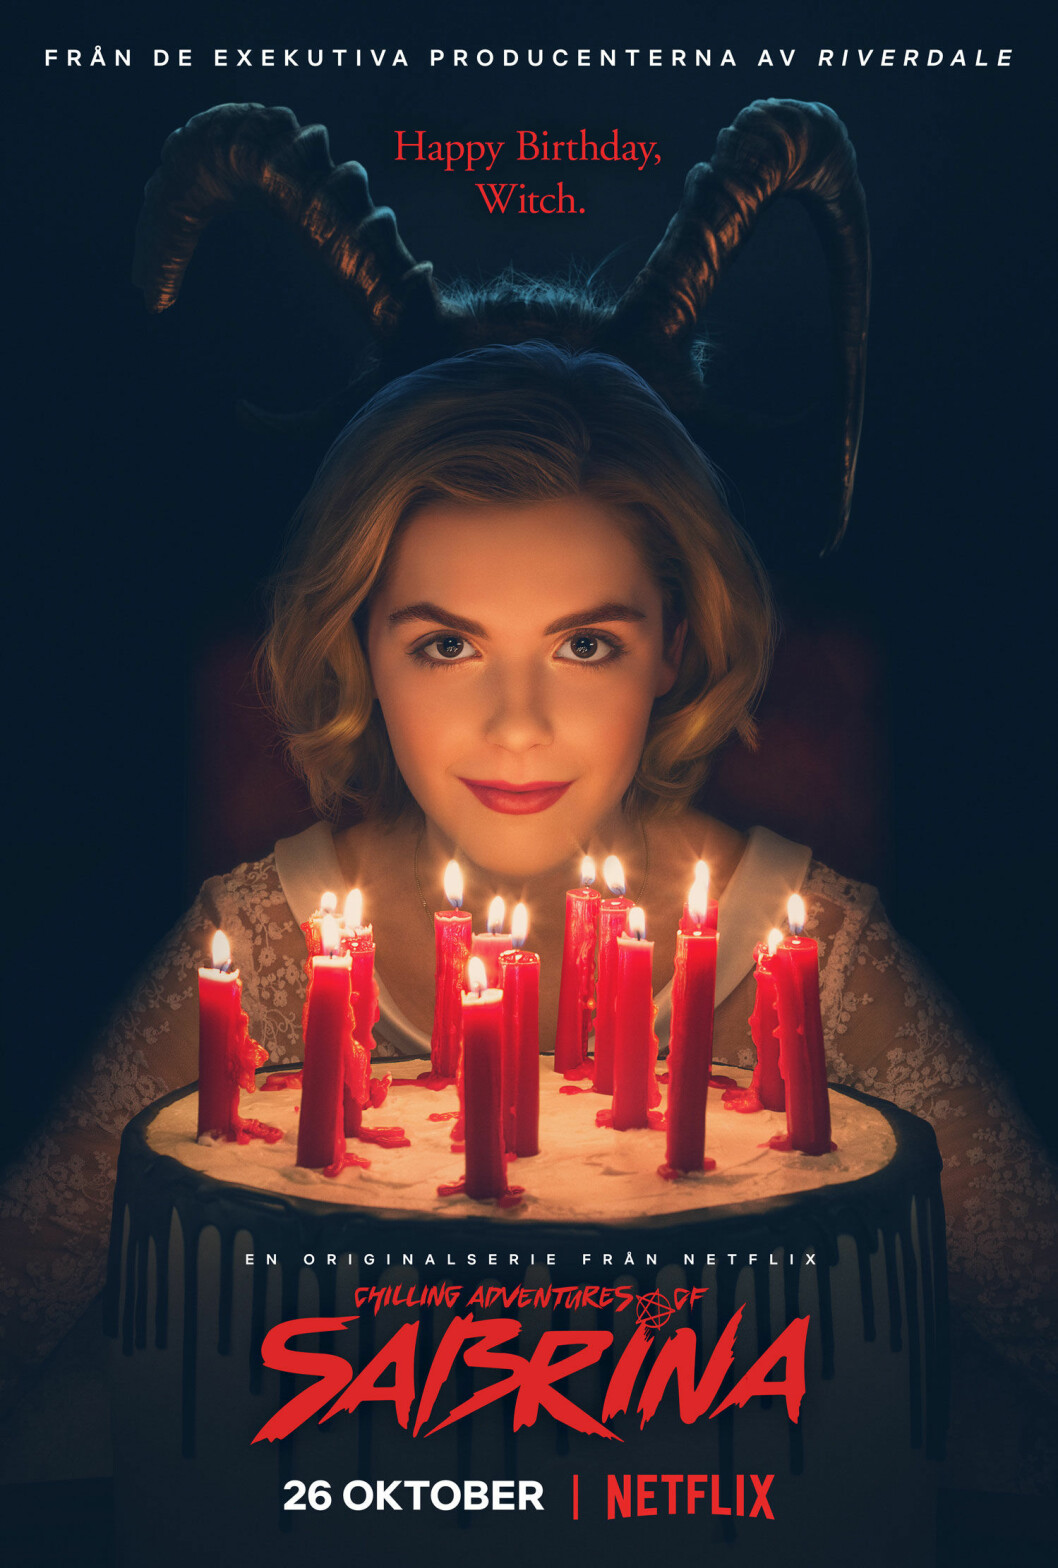 The-Chilling-adventures-of-Sabrina-netflix